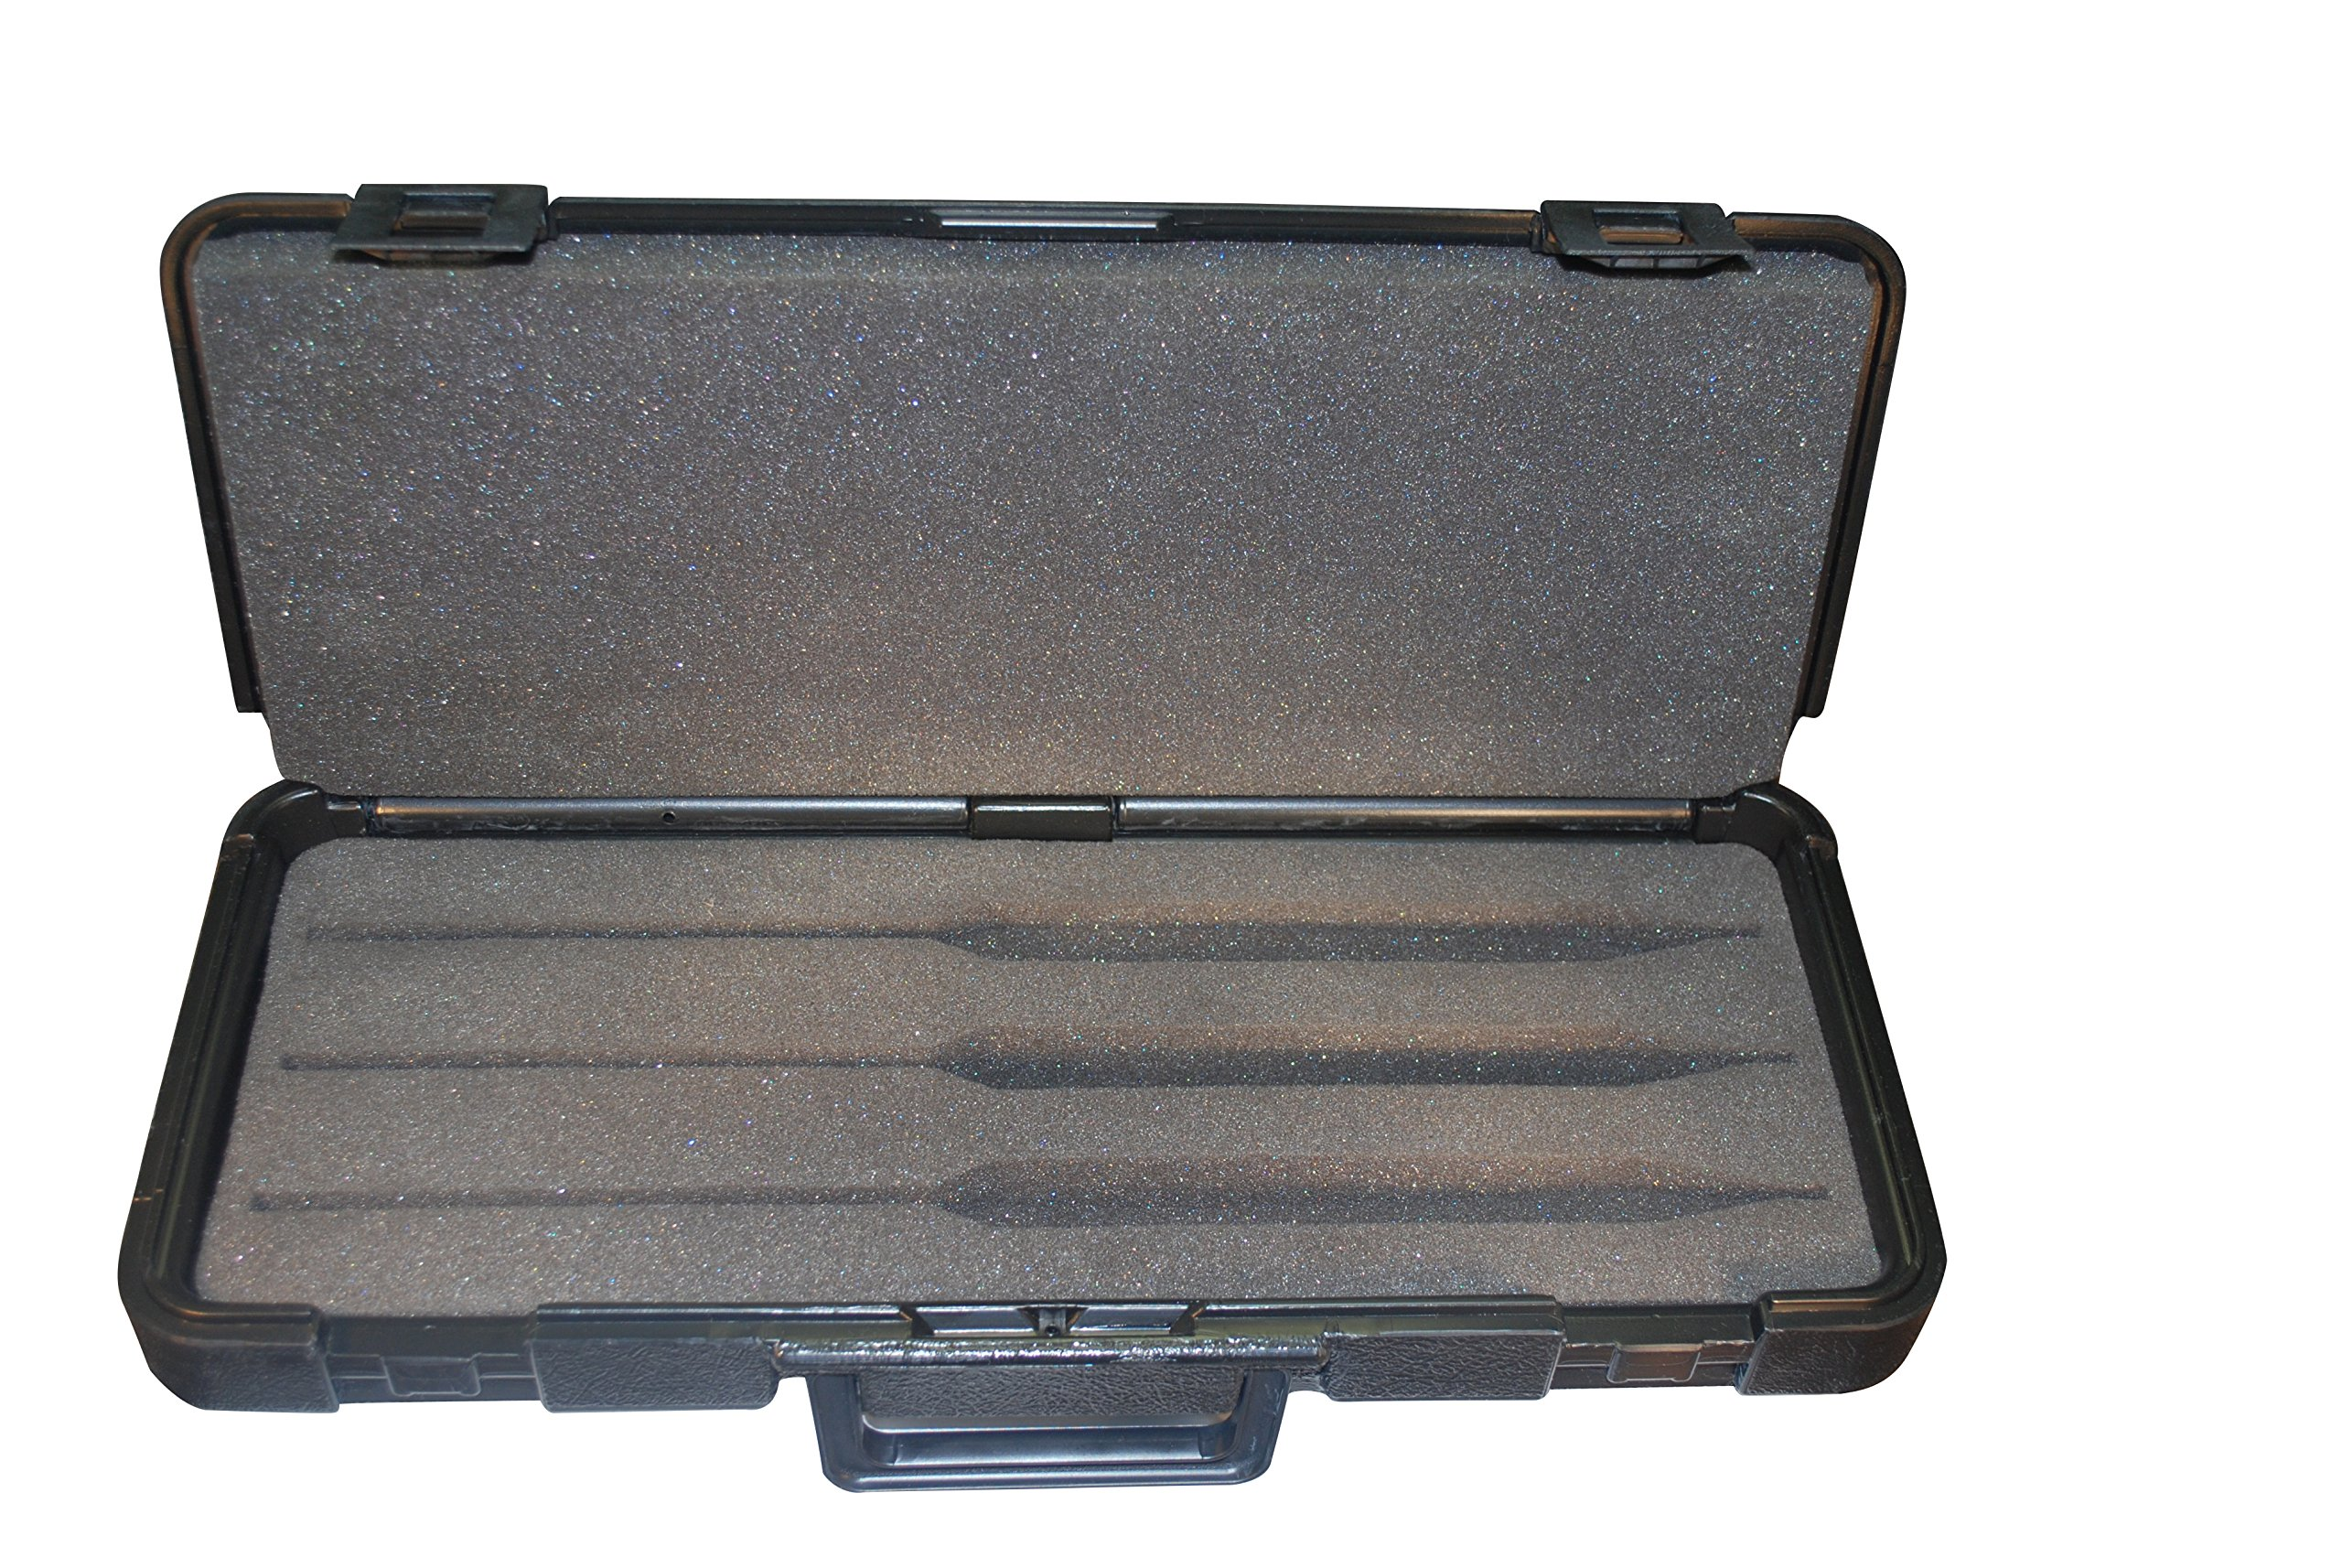 Sturdy plastic case with foam inserts to hold 3 Hydrometers up to 15'' length by Hydrometer case